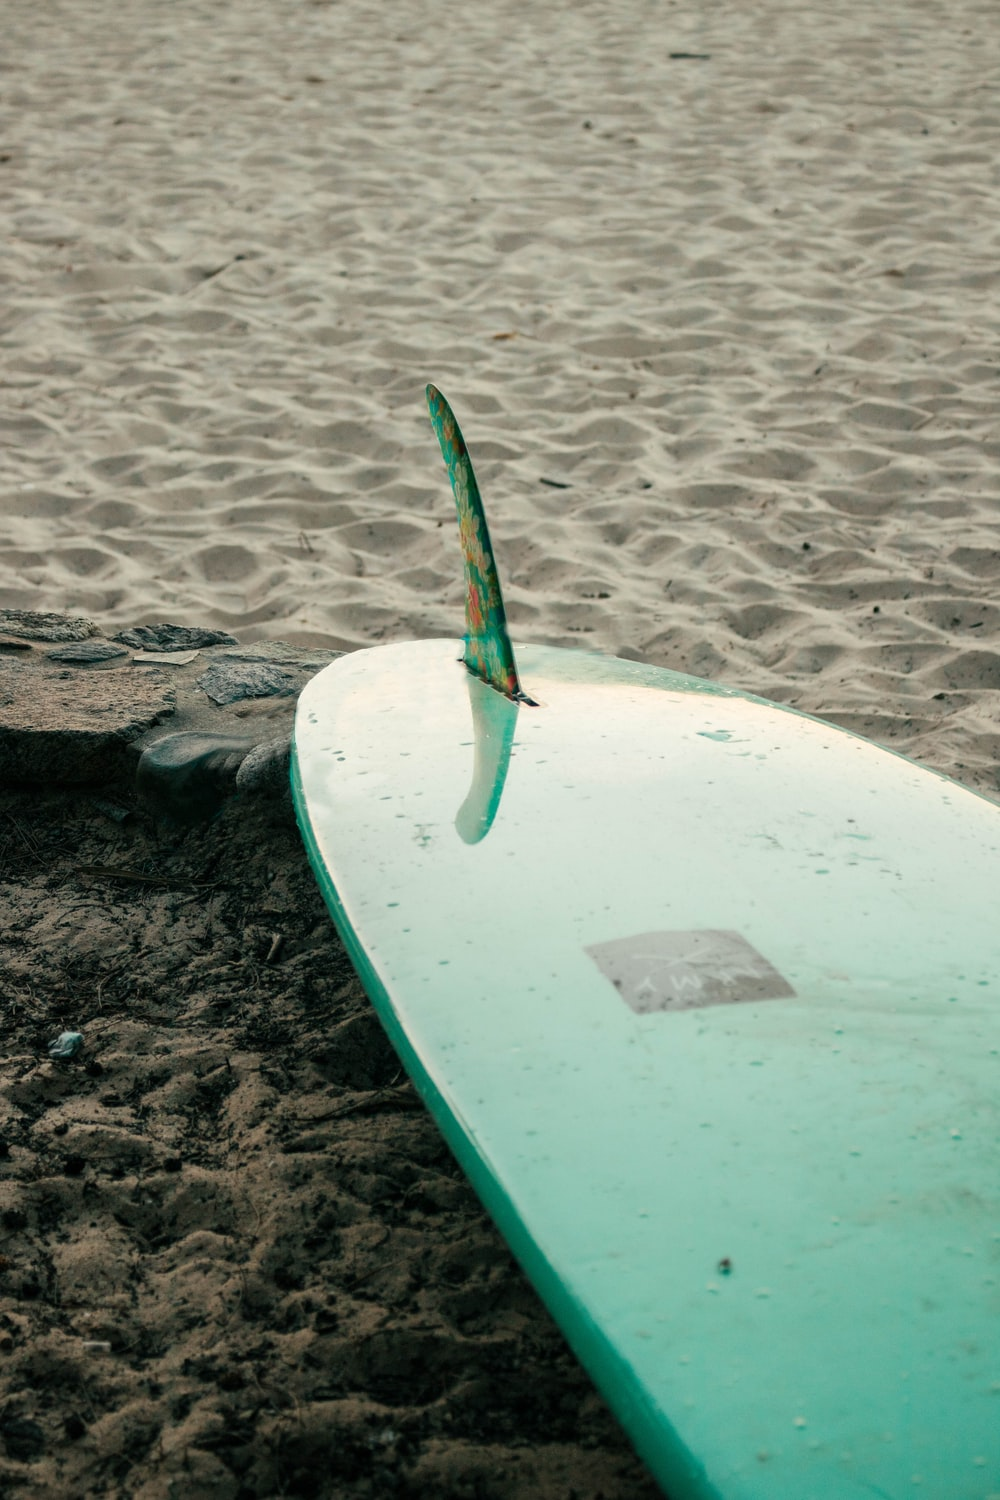 green and white surfboard on brown sand